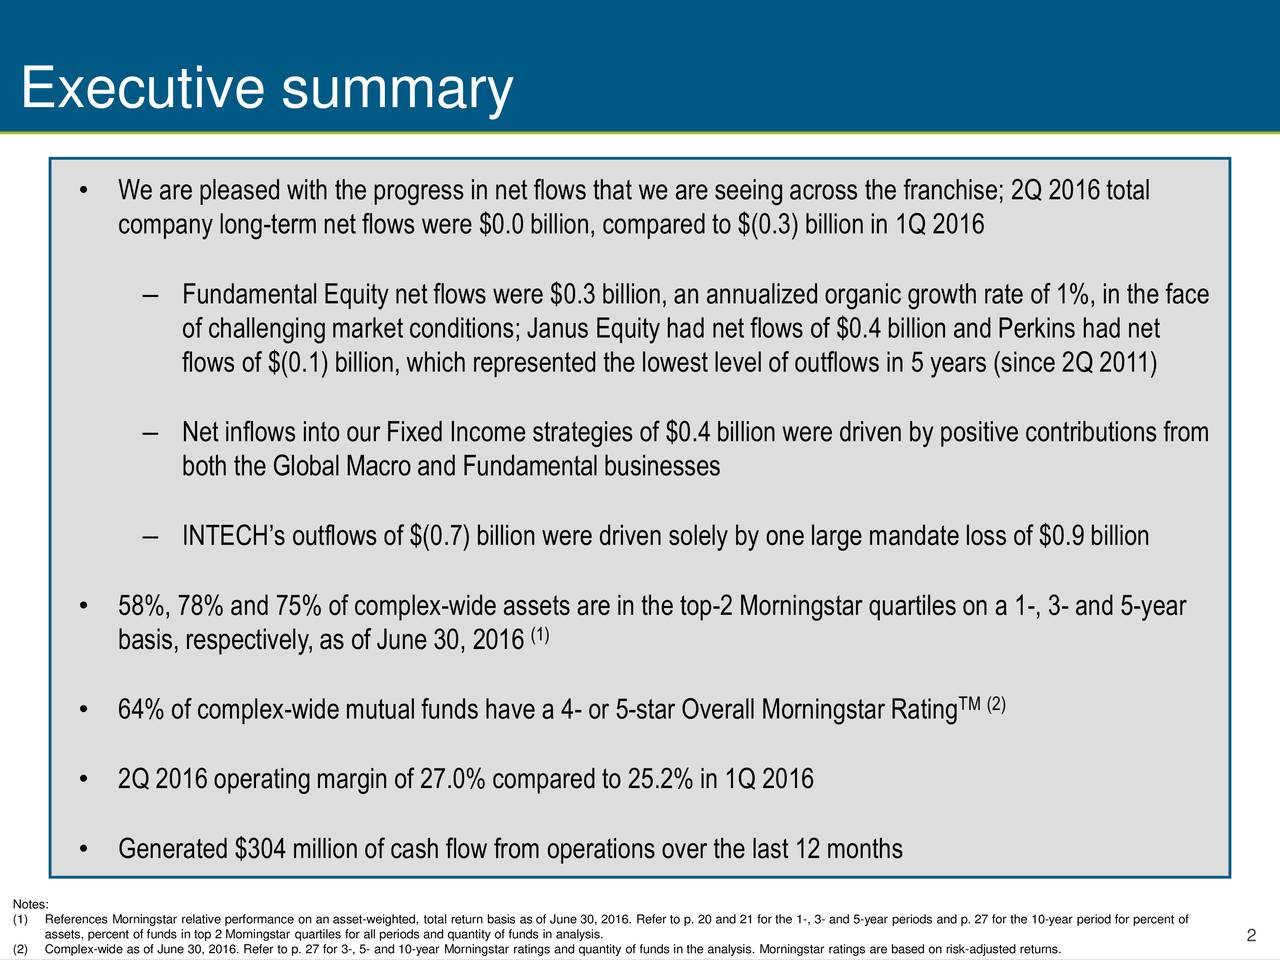 We are pleased with the progress in net flows that we are seeing across the franchise; 2Q 2016 total company long-term net flows were $0.0 billion, compared to $(0.3) billion in 1Q 2016 Fundamental Equity net flows were $0.3 billion, an annualized organic growth rate of 1%, in the face of challenging market conditions; Janus Equity had net flows of $0.4 billion and Perkins had net flows of $(0.1) billion, which represented the lowest level of outflows in 5 years (since 2Q 2011) Net inflows into our Fixed Income strategies of $0.4 billion were driven by positive contributions from both the Global Macro and Fundamental businesses INTECHs outflows of $(0.7) billion were driven solely by one large mandate loss of $0.9 billion 58%, 78% and 75% of complex-wide assets are in the top-2 Morningstar quartiles on a 1-, 3- and 5-year (1) basis, respectively, as of June 30, 2016 TM (2) 64% of complex-wide mutual funds have a 4- or 5-star Overall Morningstar Rating 2Q 2016 operating margin of 27.0% compared to 25.2% in 1Q 2016 Generated $304 million of cash flow from operations over the last 12 months (1)References Morningstar relative performance on an asset-weighted, total return basis as of June 30, 2016. Refer to p. 20 and 21 for the 1-, 3- and 5-year periods and p. 27 for the 10-year period for percent of assets, percent of funds in top 2 Morningstar quartiles for all periods and quantity of funds in analysis. 2